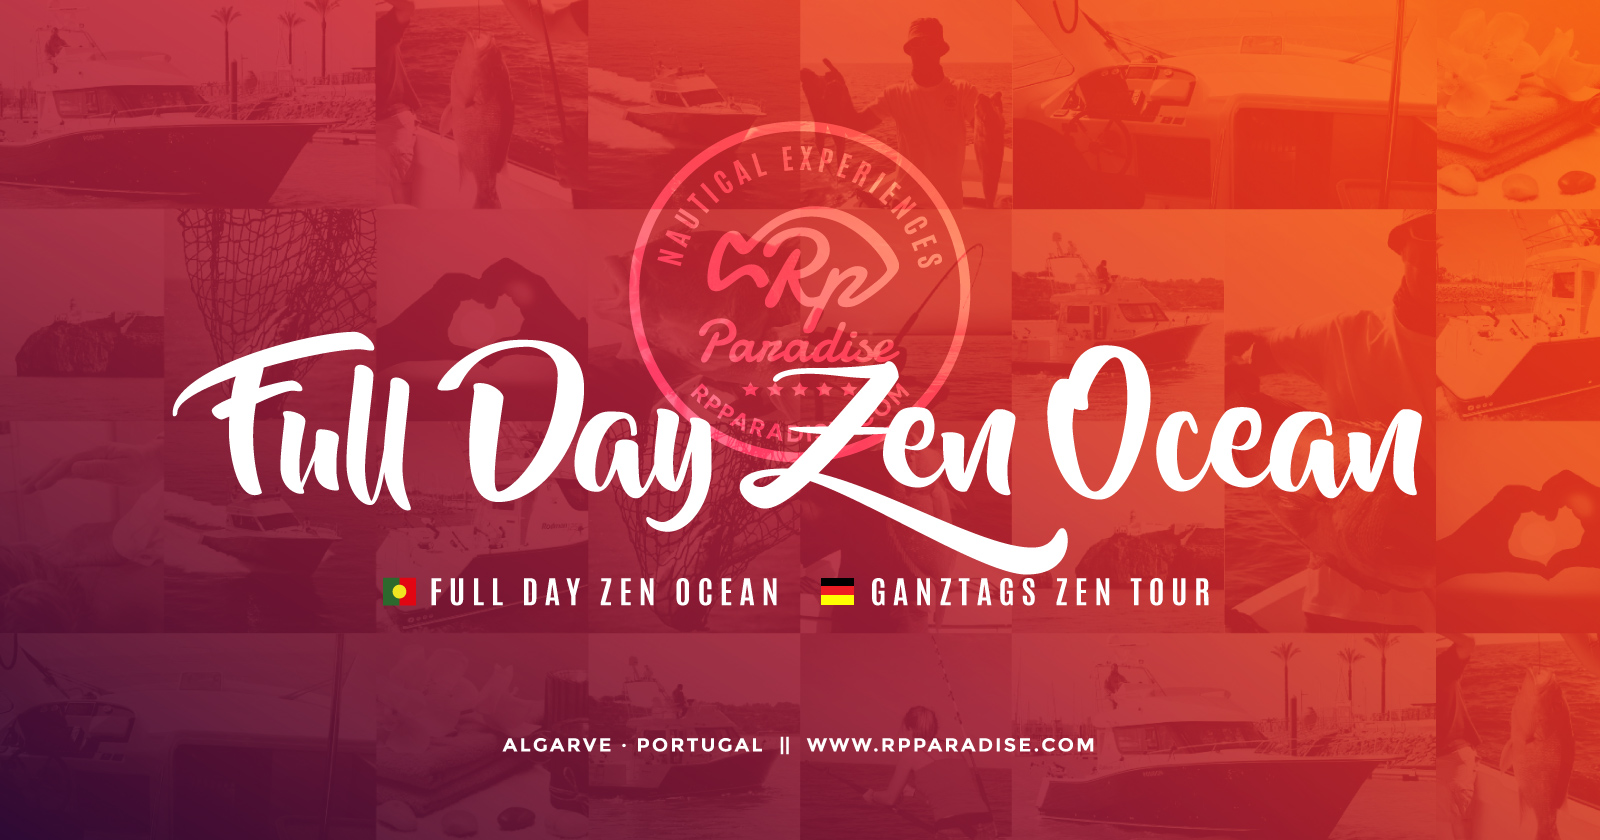 Full Day Zen Ocean